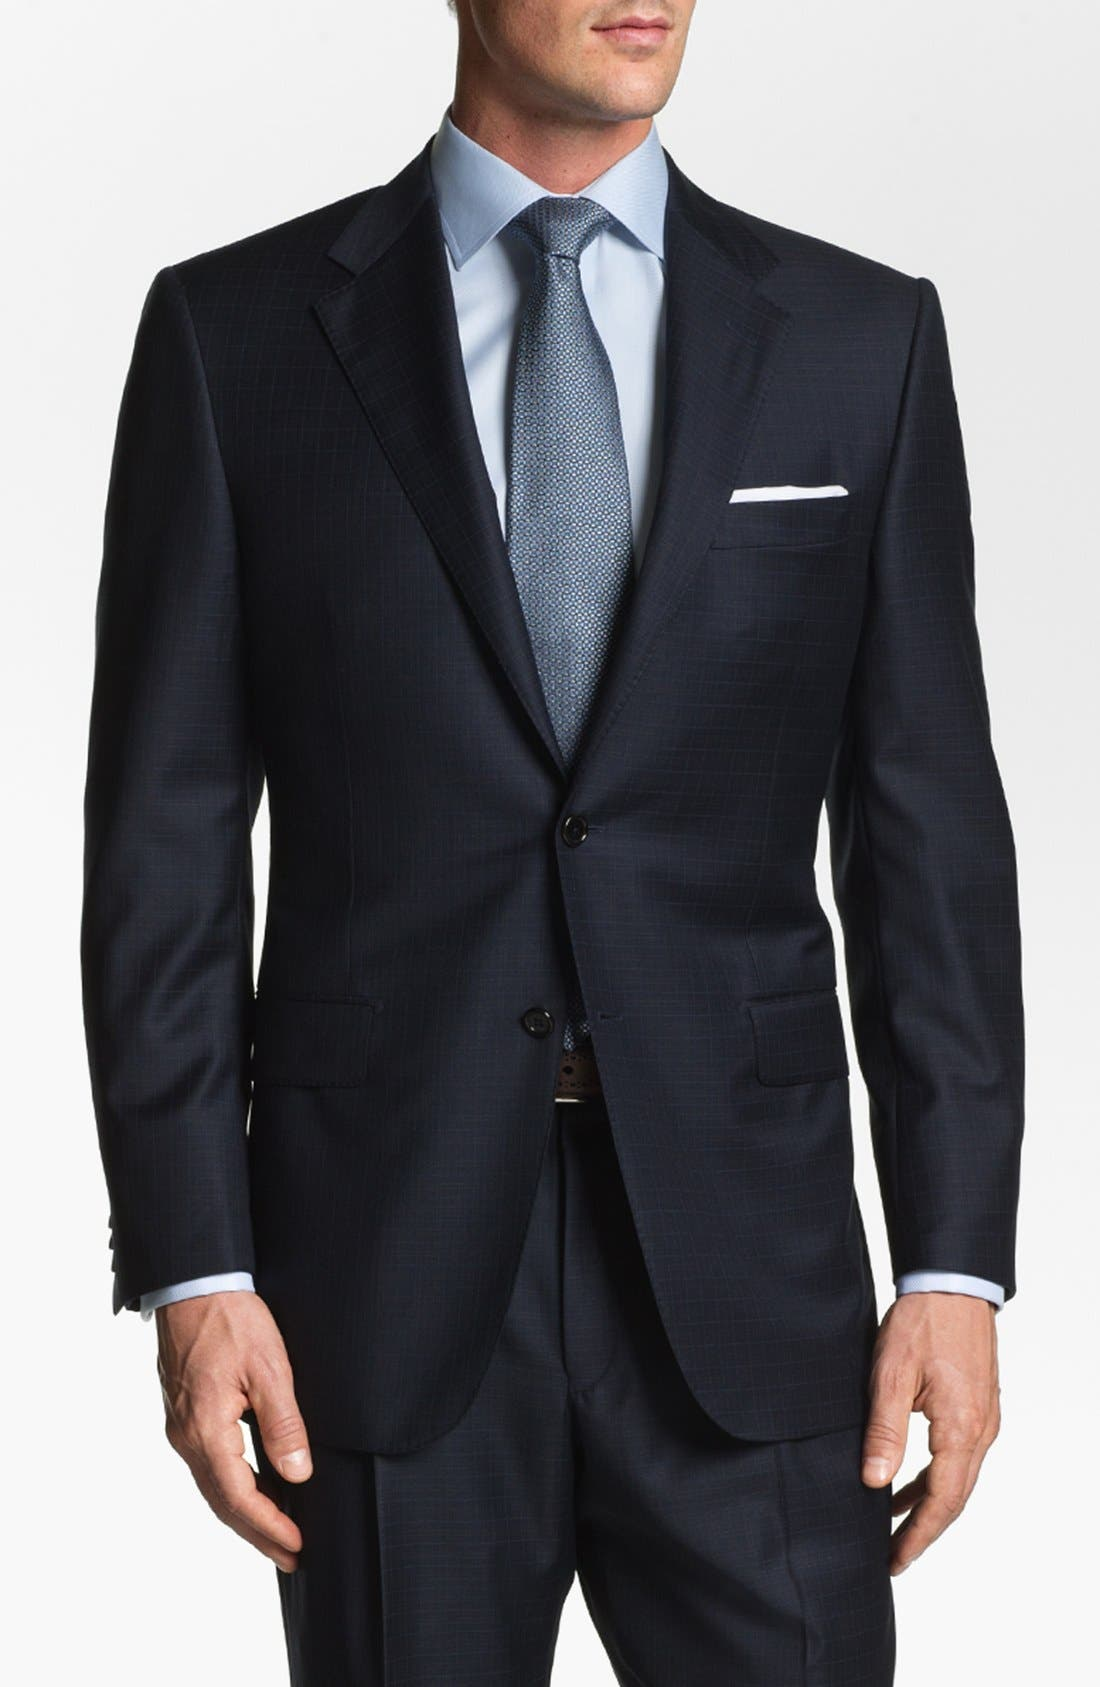 Alternate Image 1 Selected - Hickey Freeman 'Addison' Check Suit